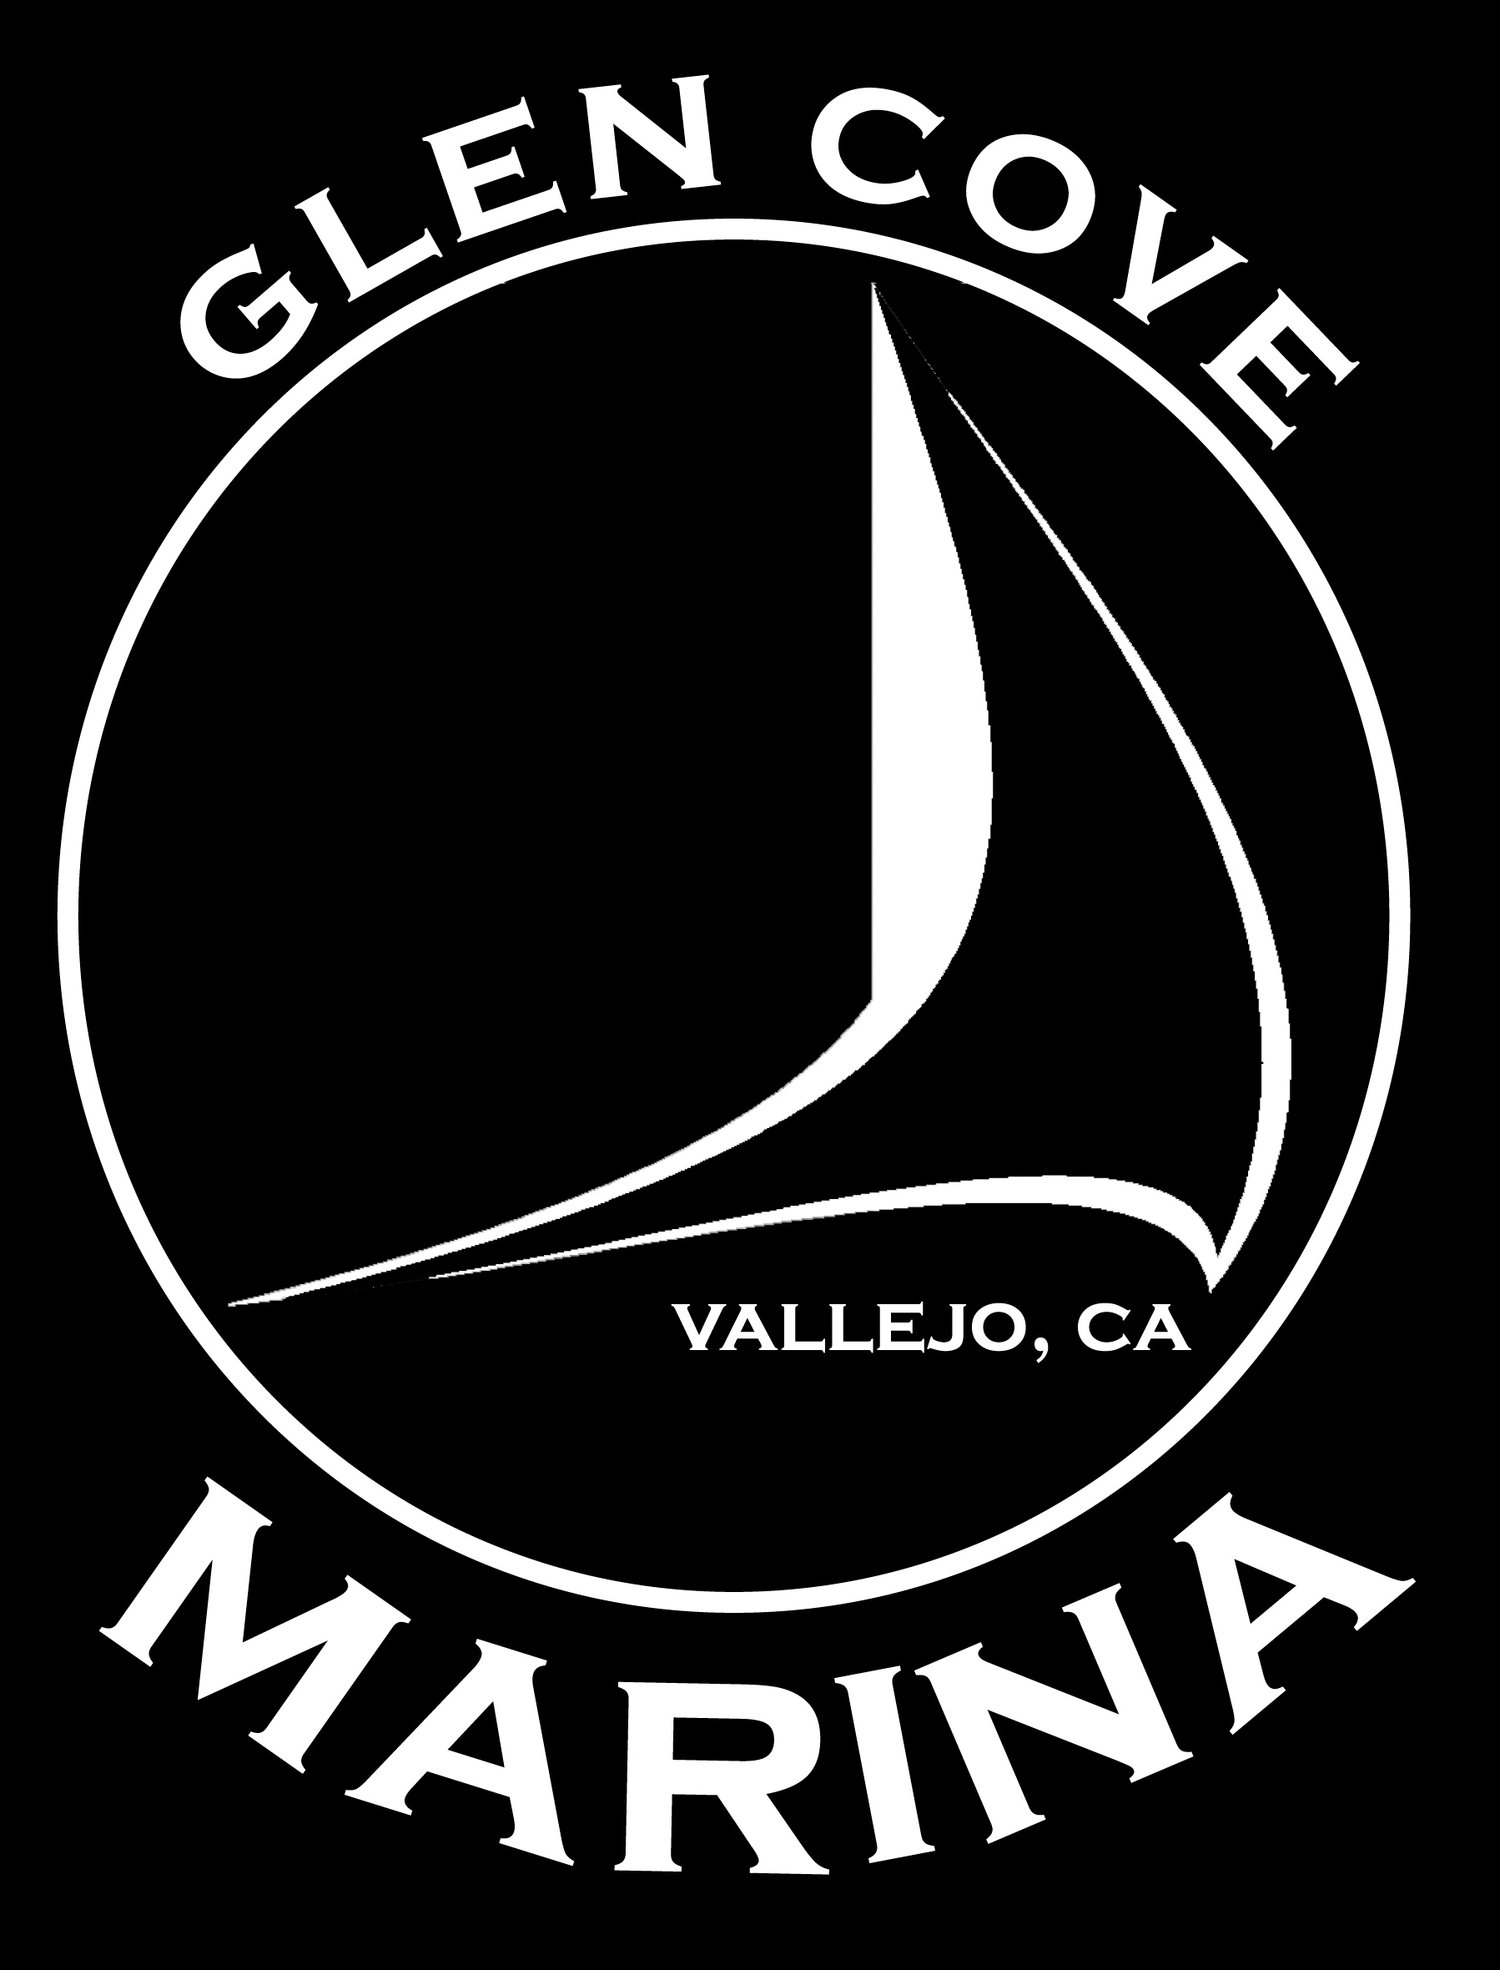 The Glen Cove Marina Vallejo California